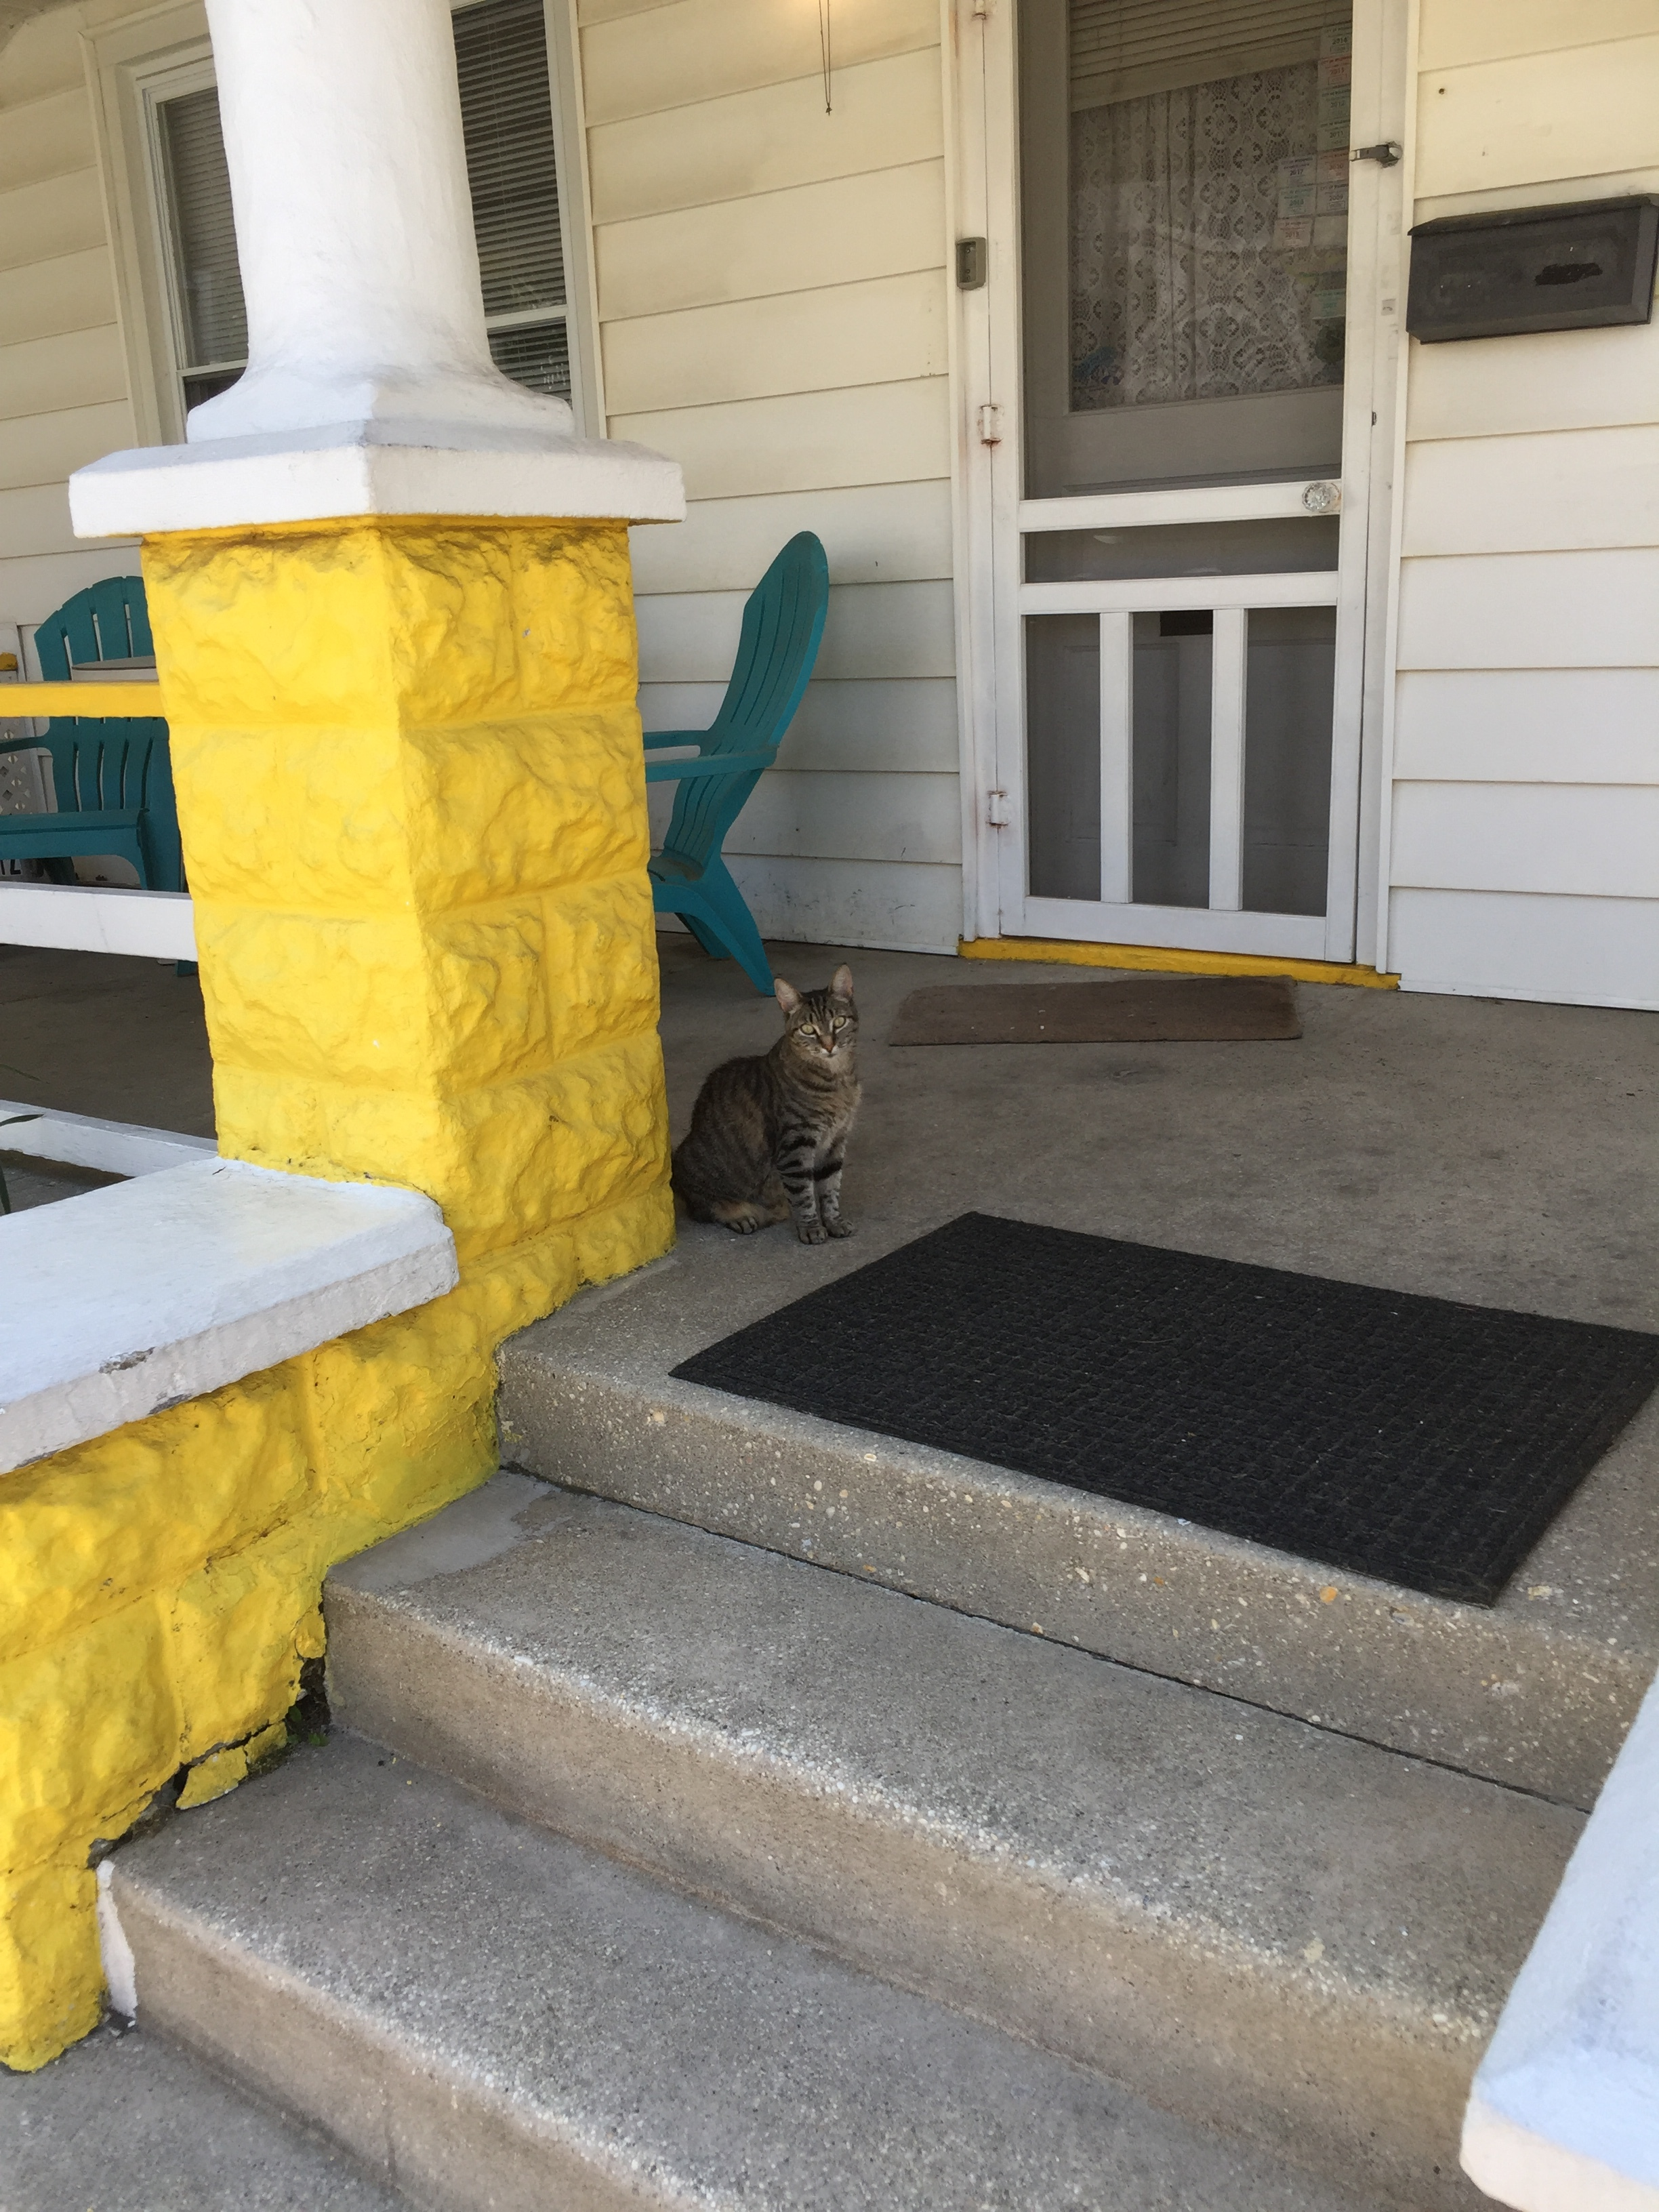 This feral cat is always hanging around the house.